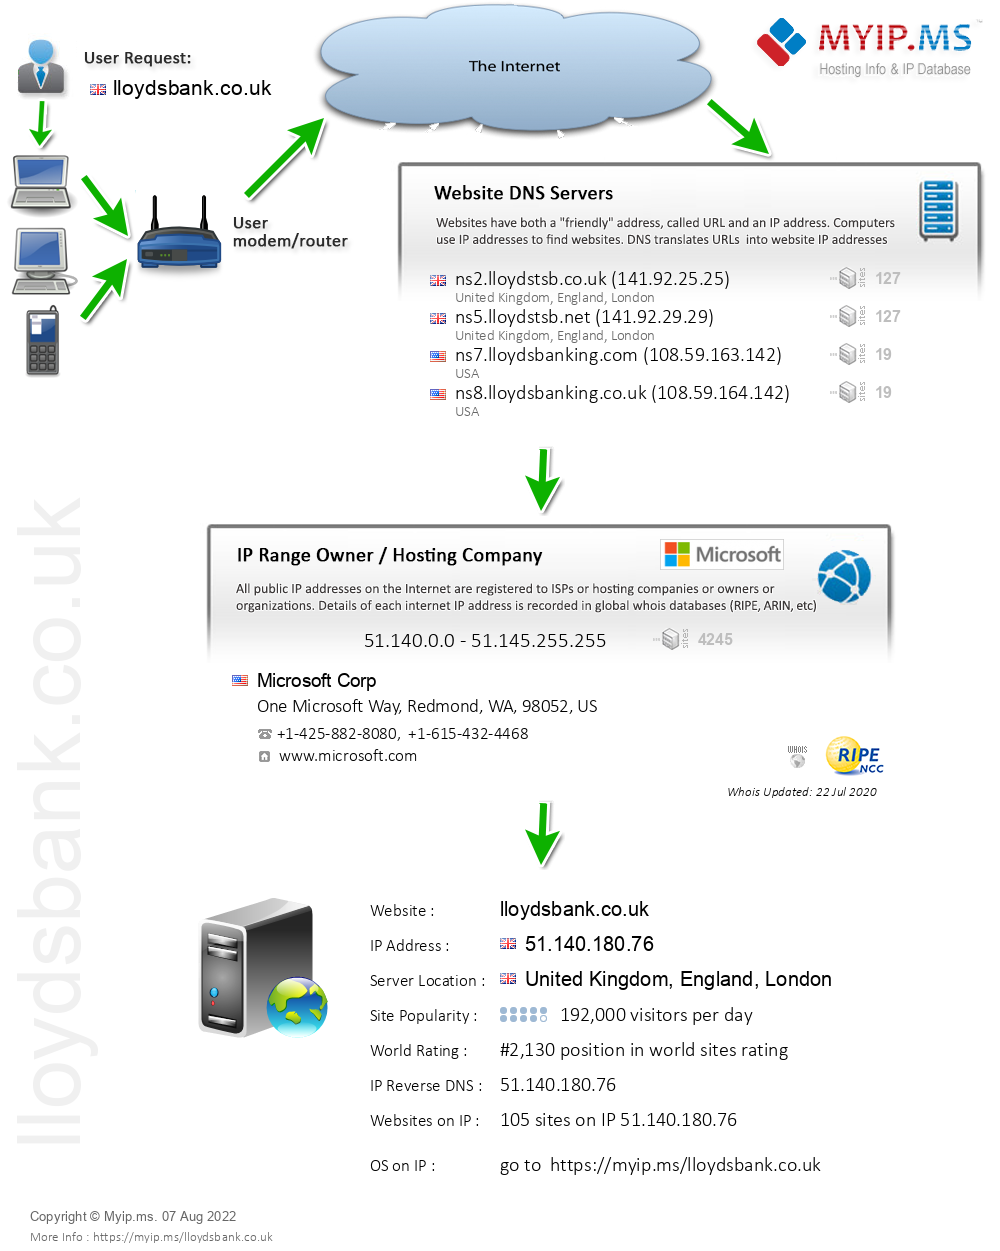 Lloydsbank.co.uk - Website Hosting Visual IP Diagram